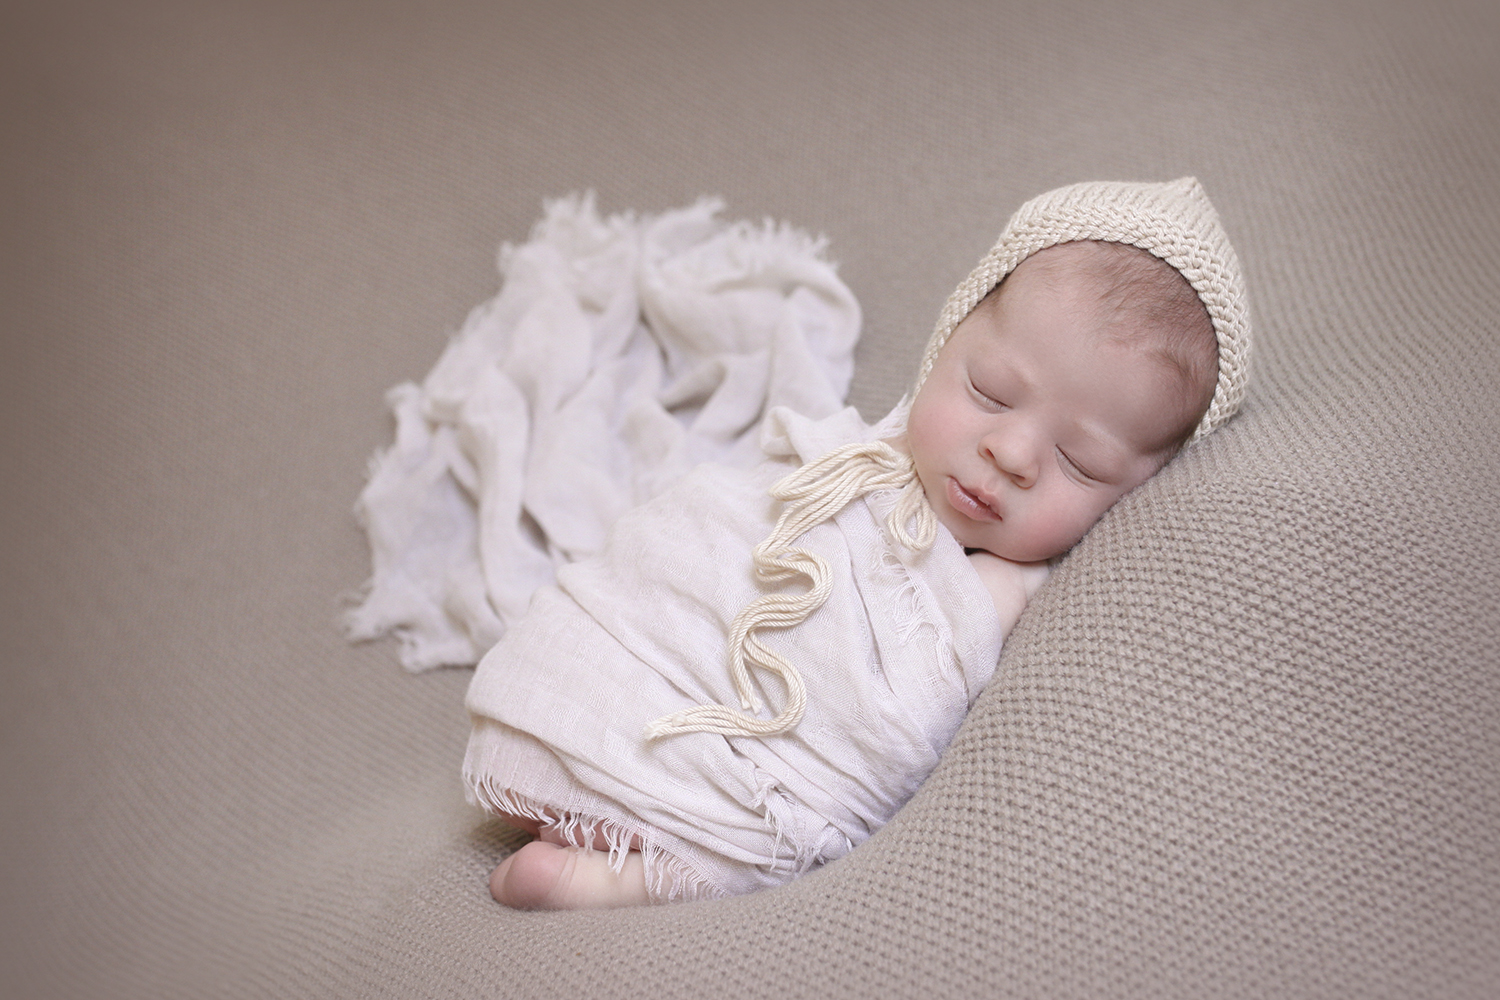 Newborn baby boy sleeping on brown blanket with tan knit bonnet and cream wrap